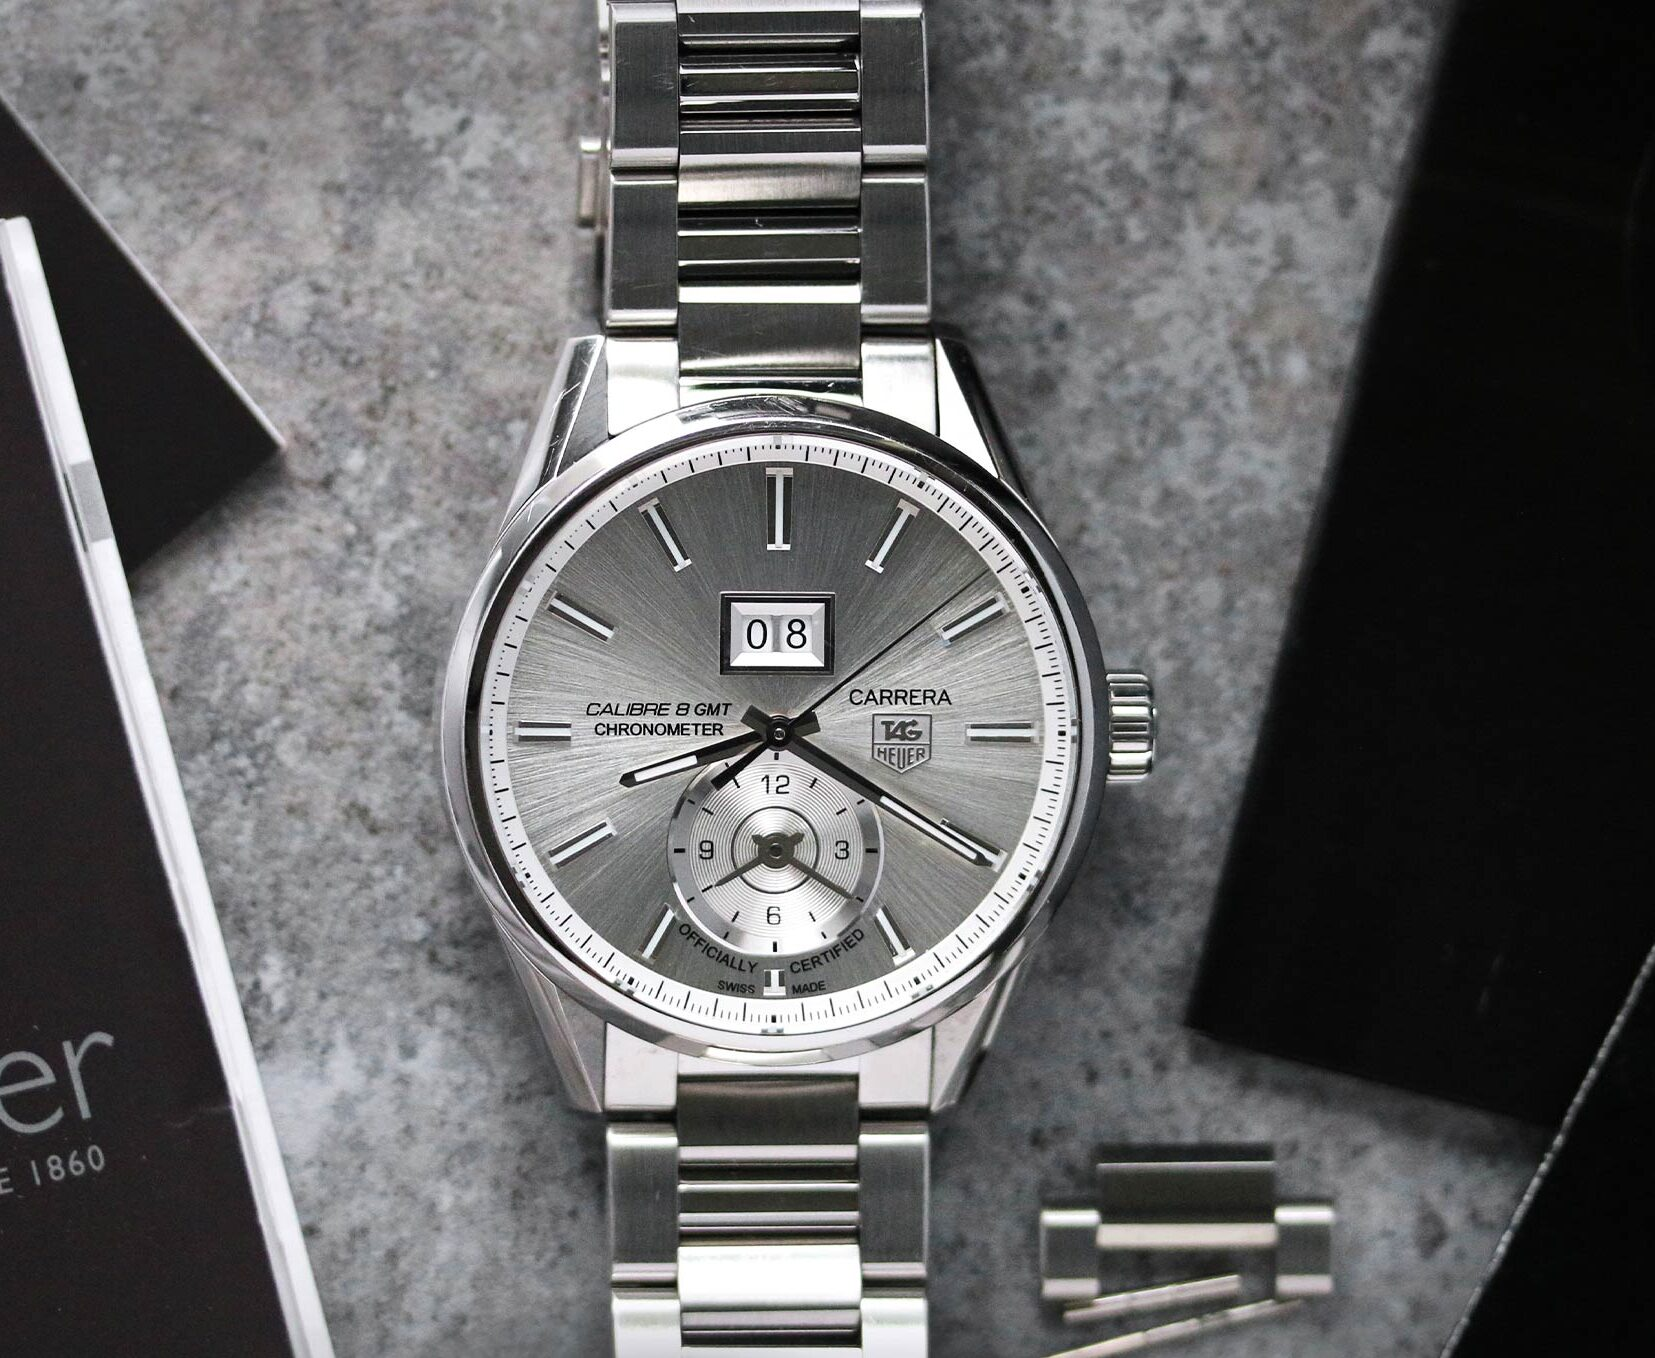 Tag Heuer Carrera GMT watch for sale